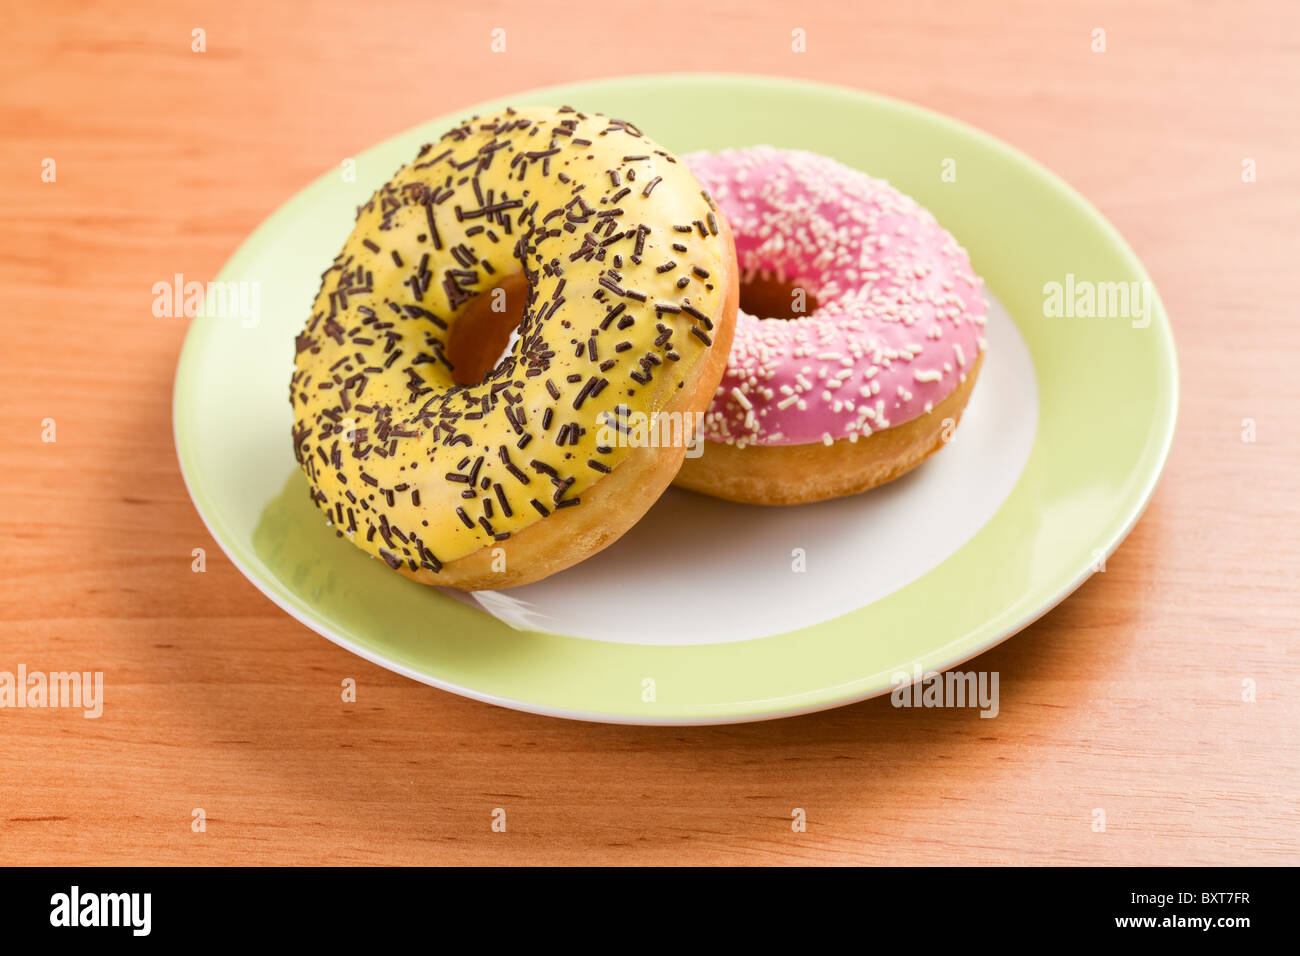 the sweet doughnuts on plate - Stock Image